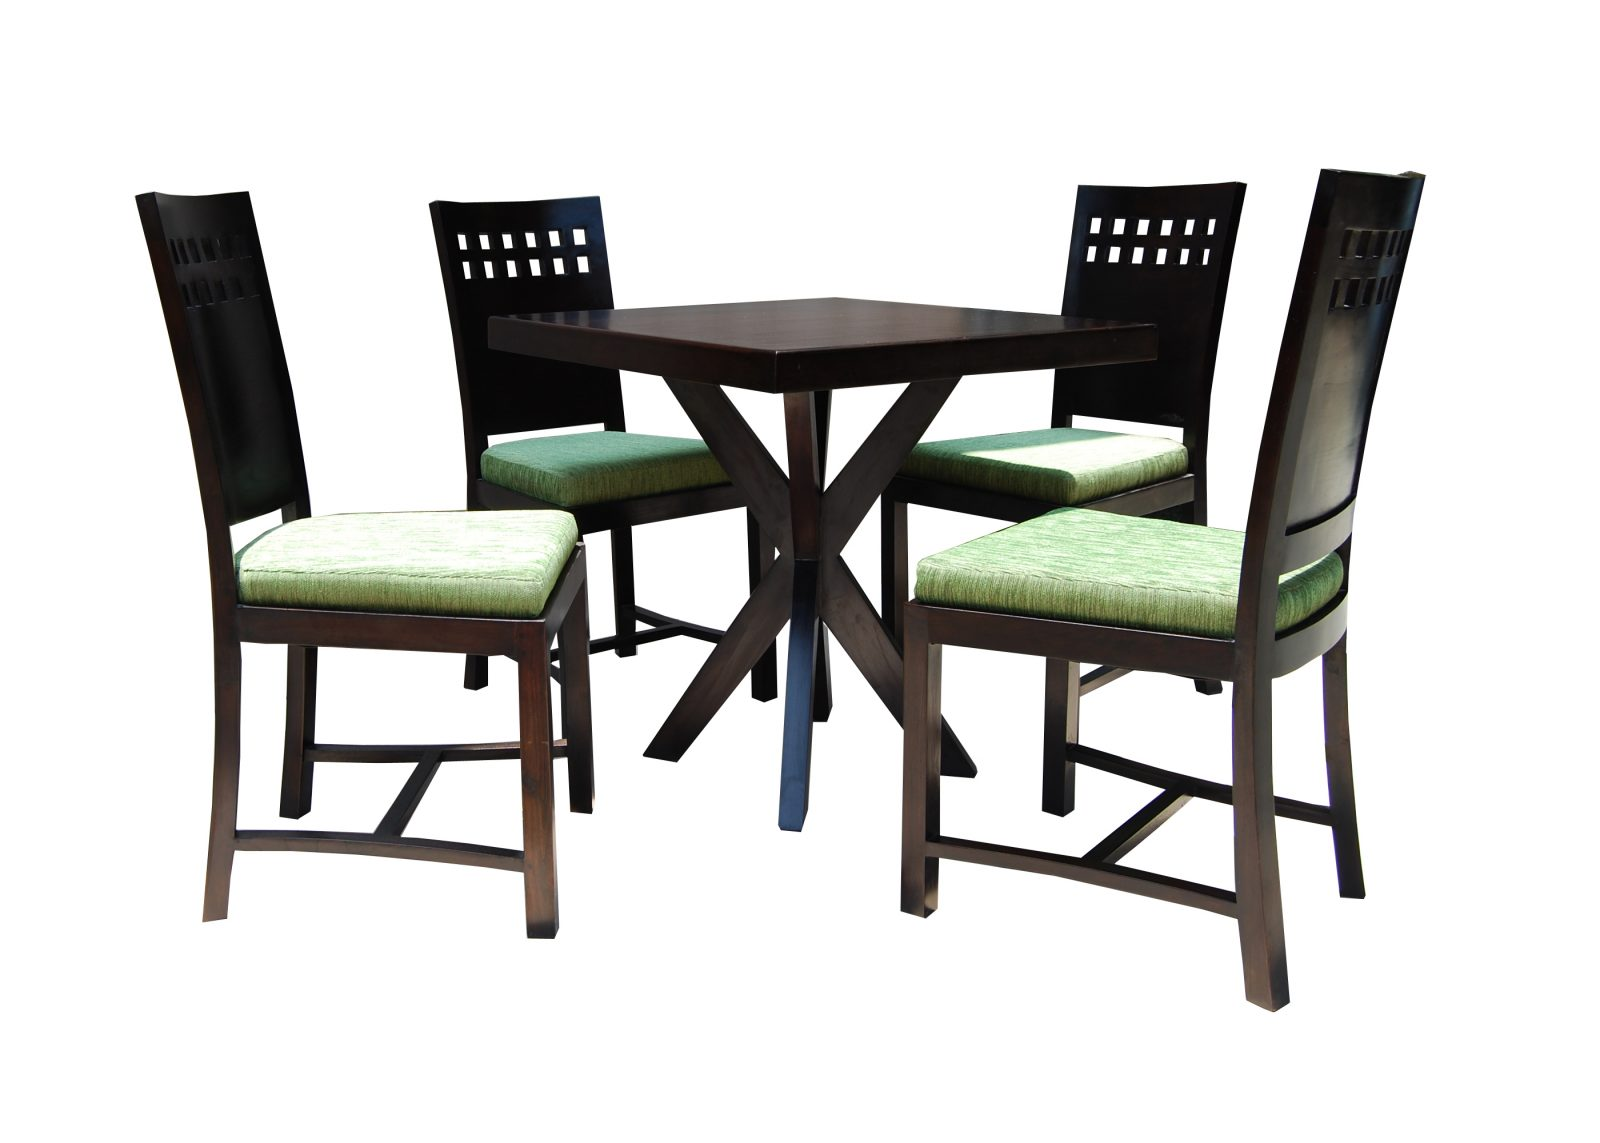 Wales dining room set indonesia dining room furniture sets Uni home furniture indonesia